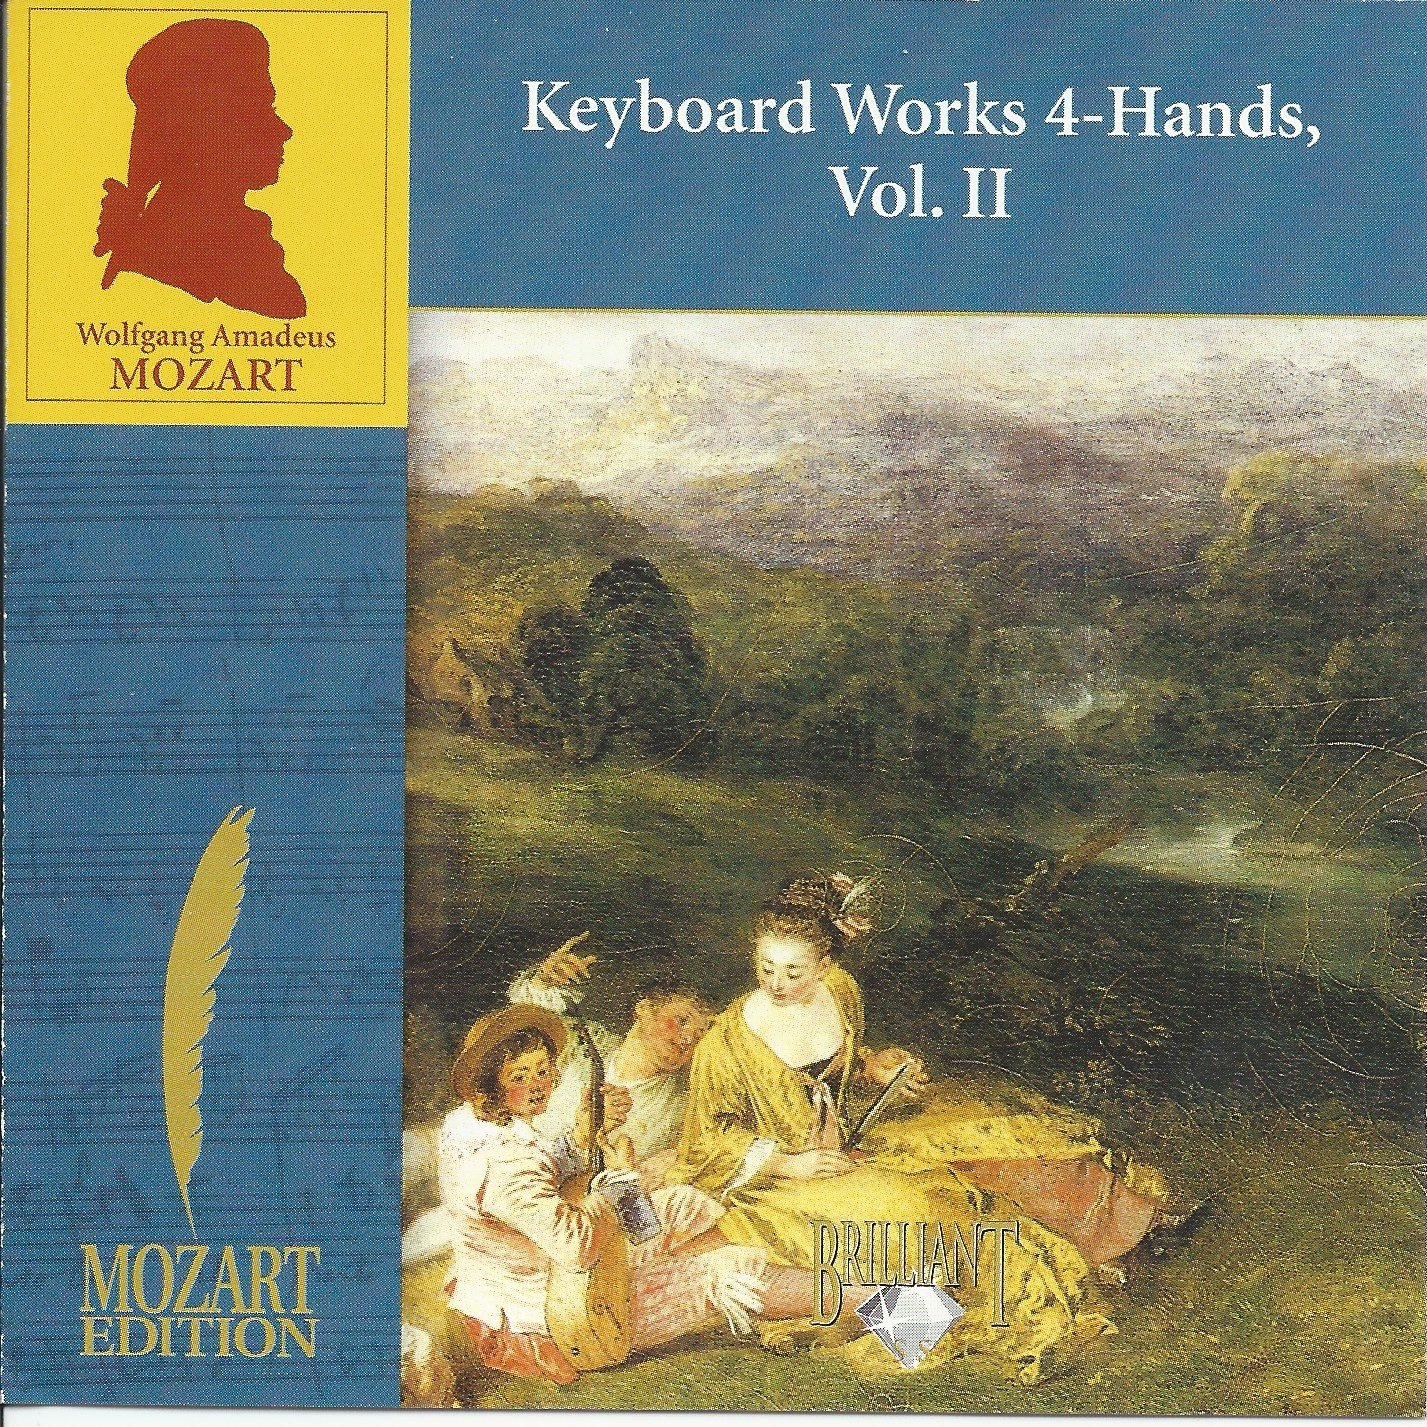 WA Mozart: Keyboard Works 4-Hands, Vol. II